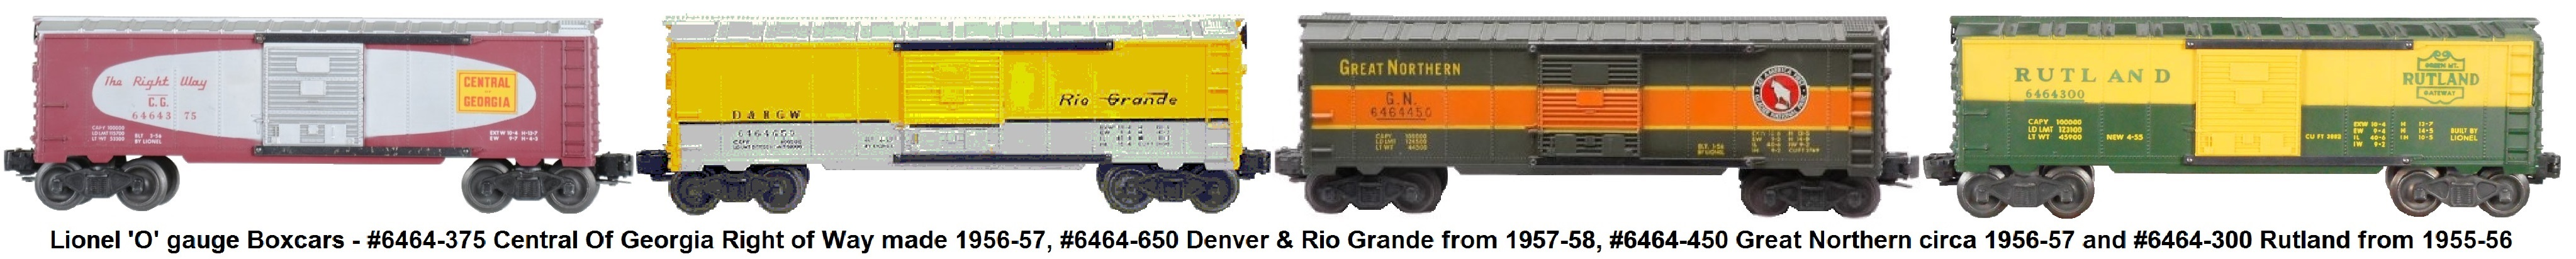 Lionel 6464 series box cars from the post-war era.